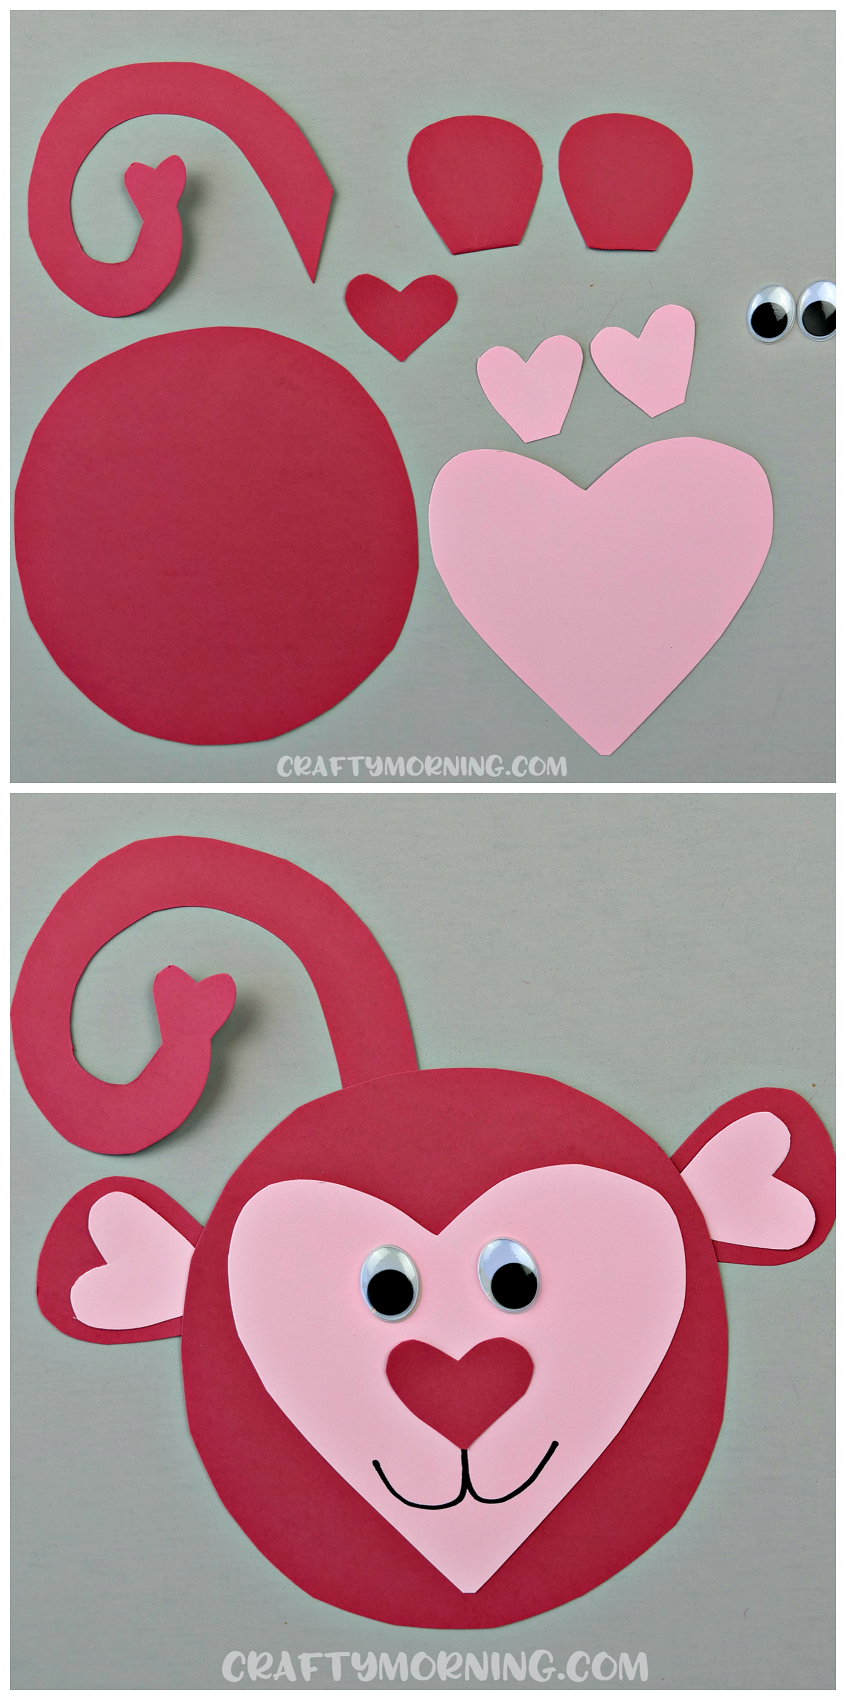 Here's an adorable heart shaped monkey craft for kids ...